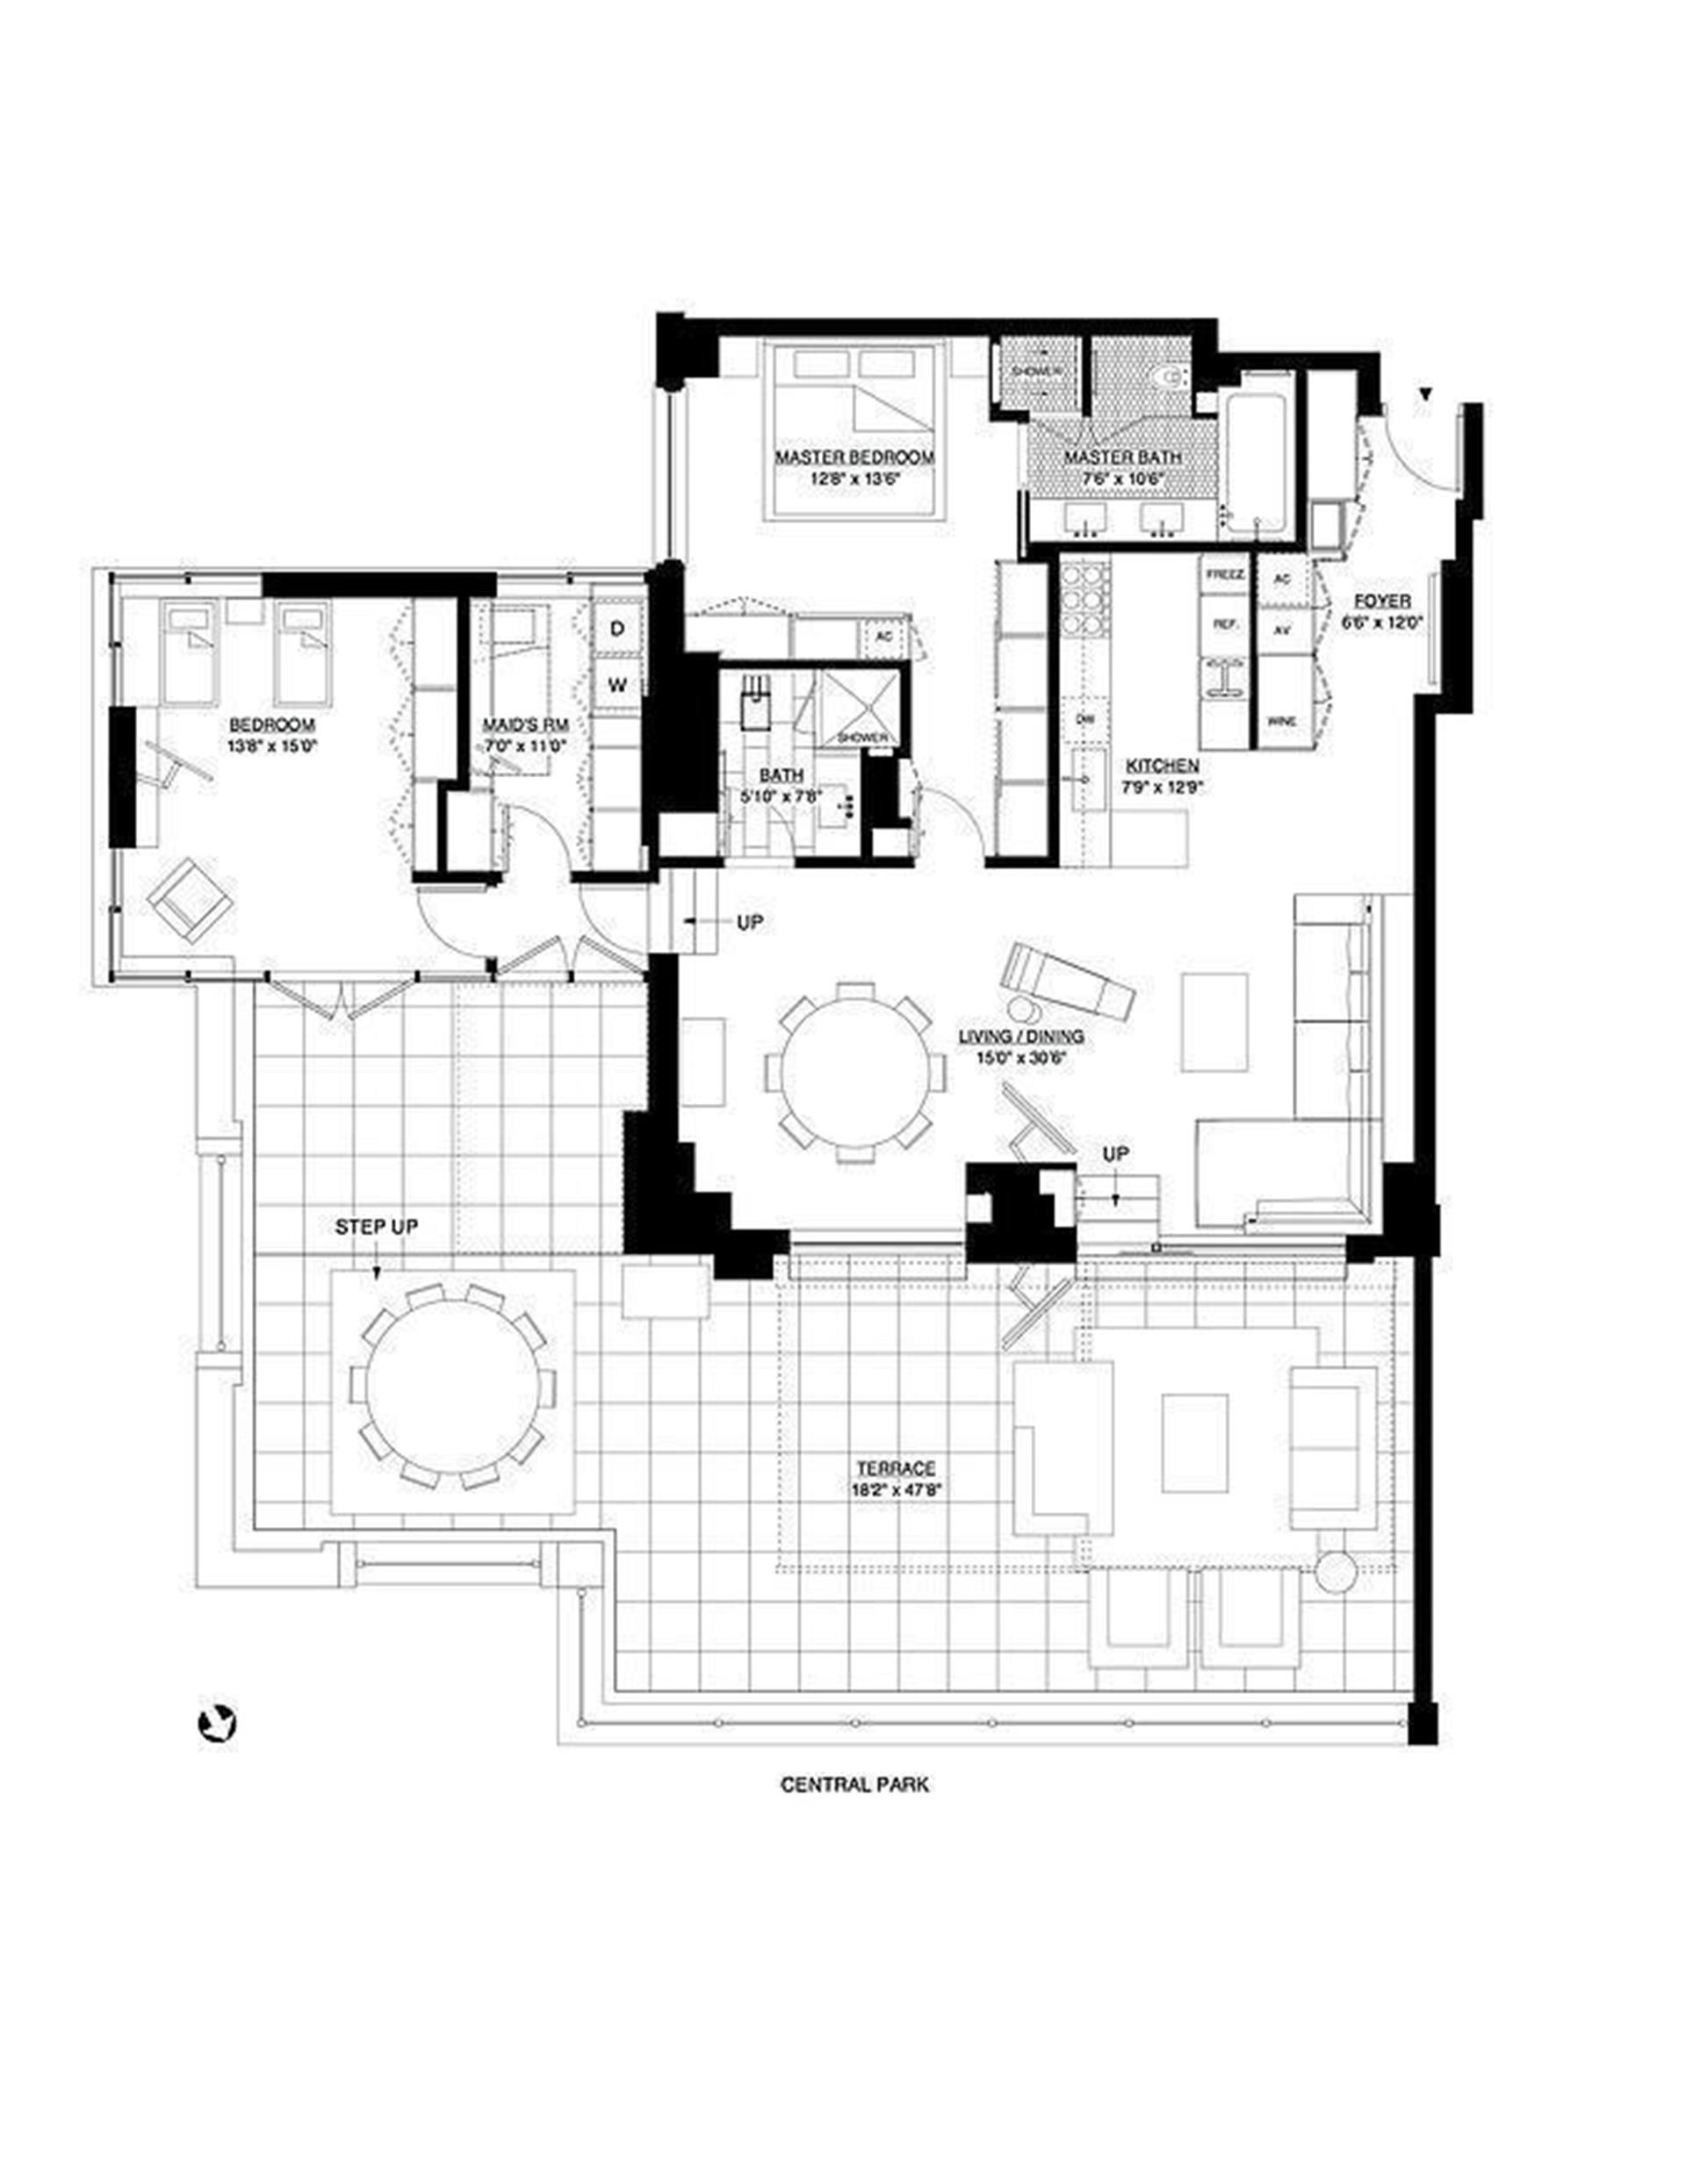 Floor plan of Essex House, 160 Central Park South, 1901 - Central Park South, New York